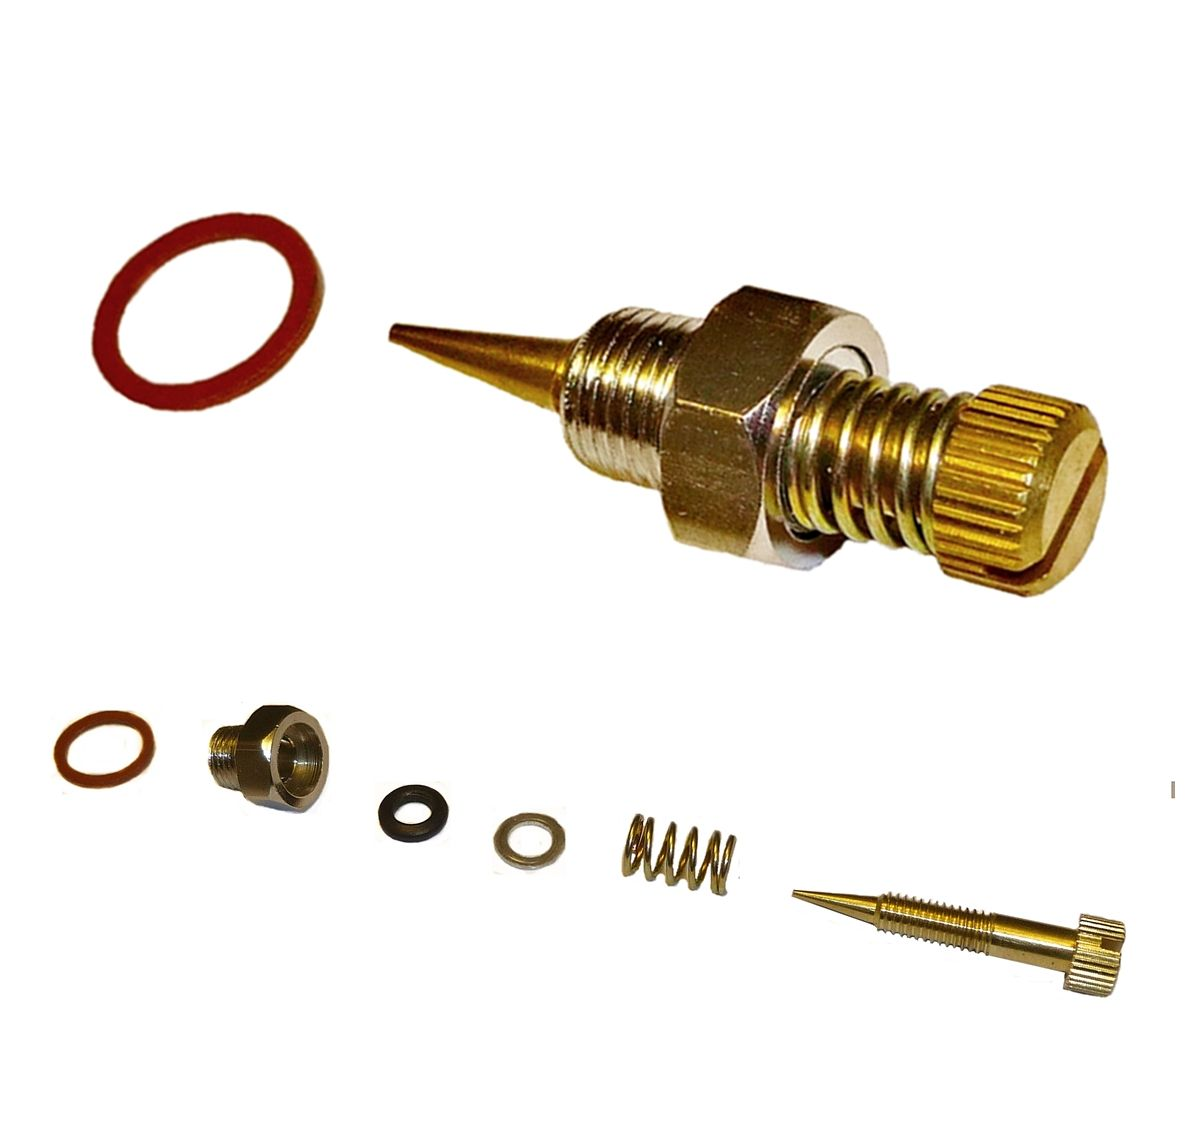 Carb Needle Mixture Screw Valve Kit For Briggs And Stratton Hp To Hp Engines Part No S P